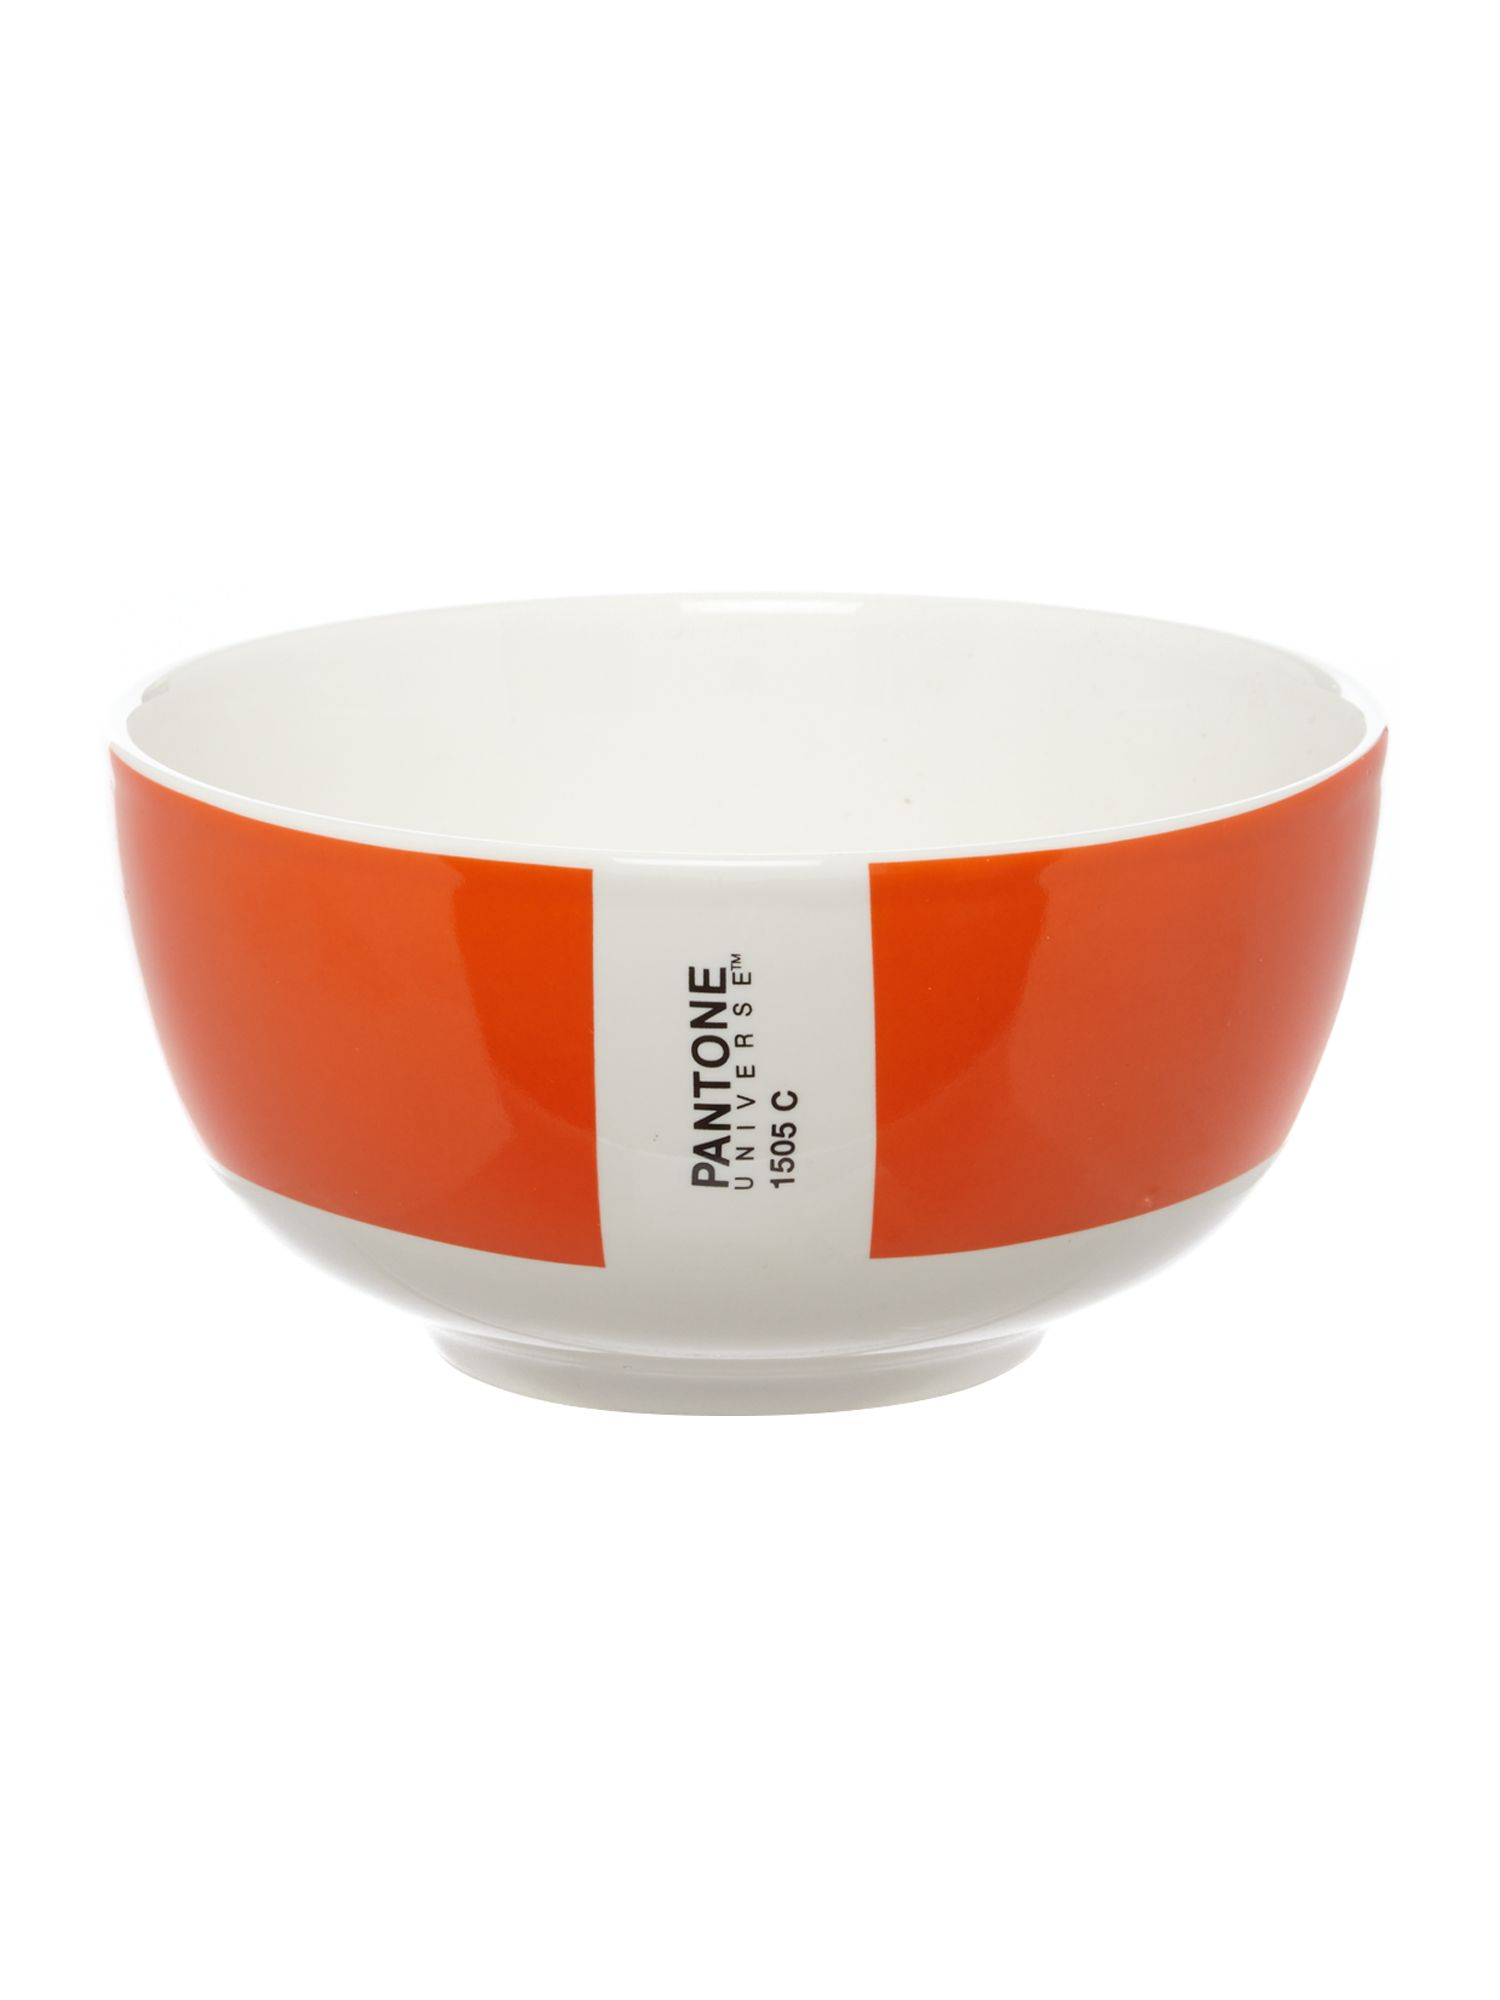 Image of Pantone Bowl luca trazzi orange